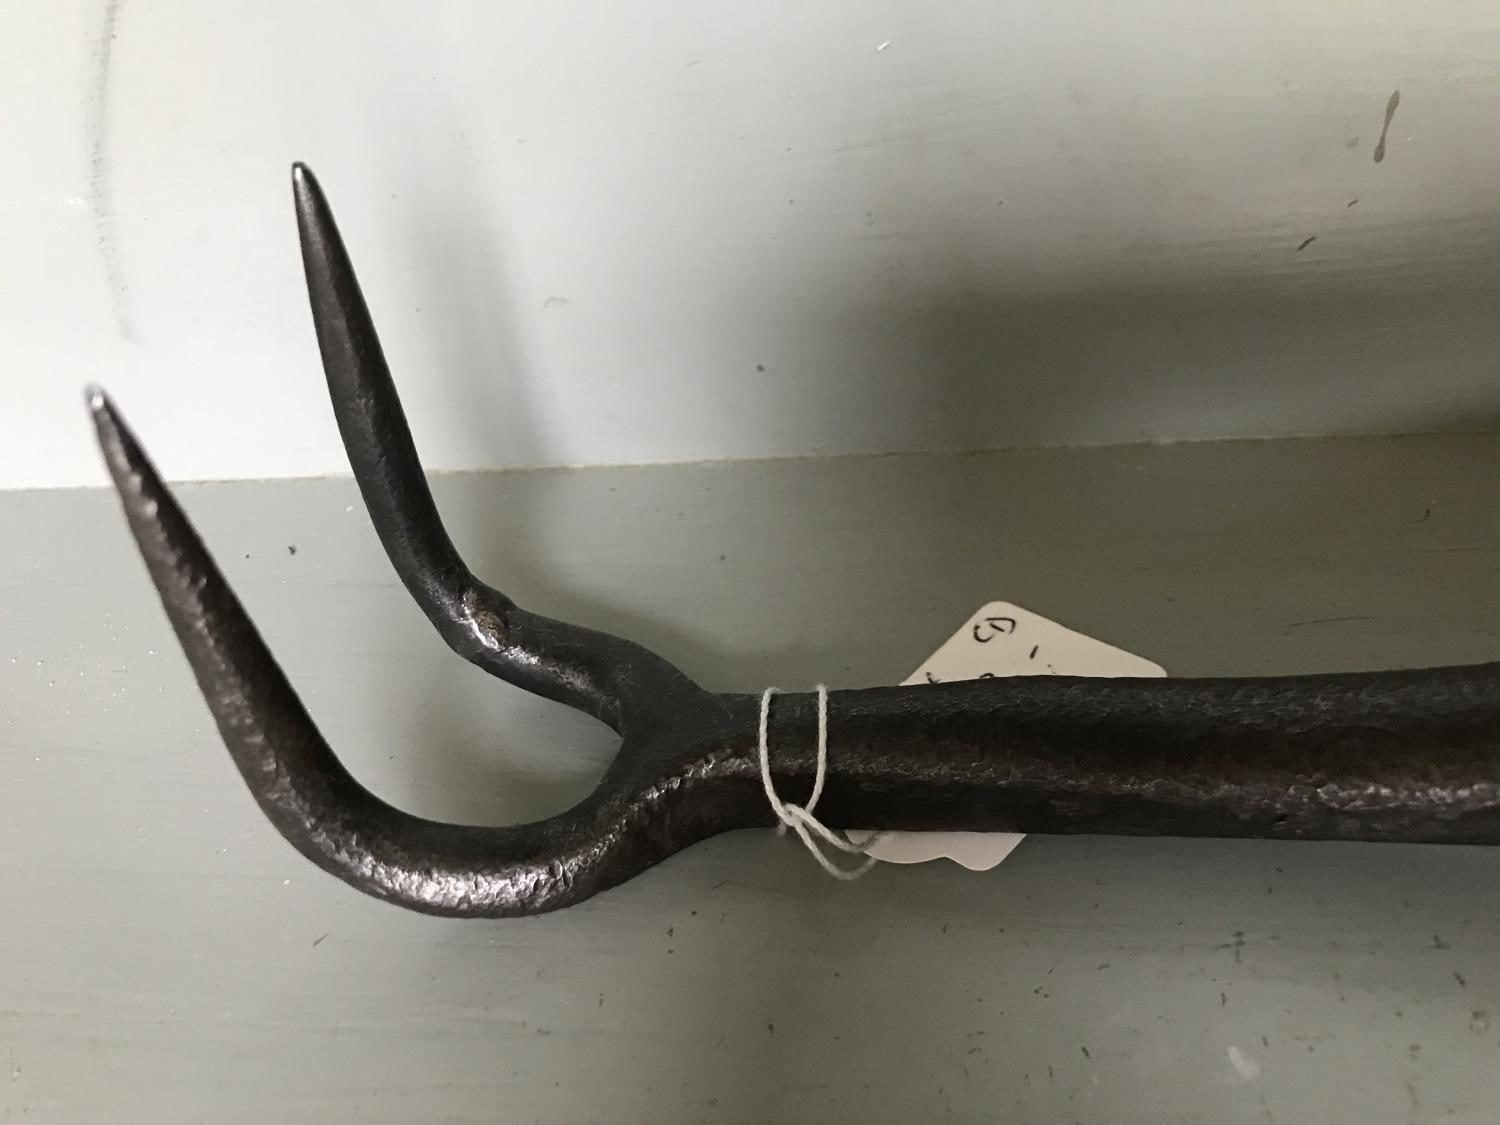 19th cent Turnip Hook